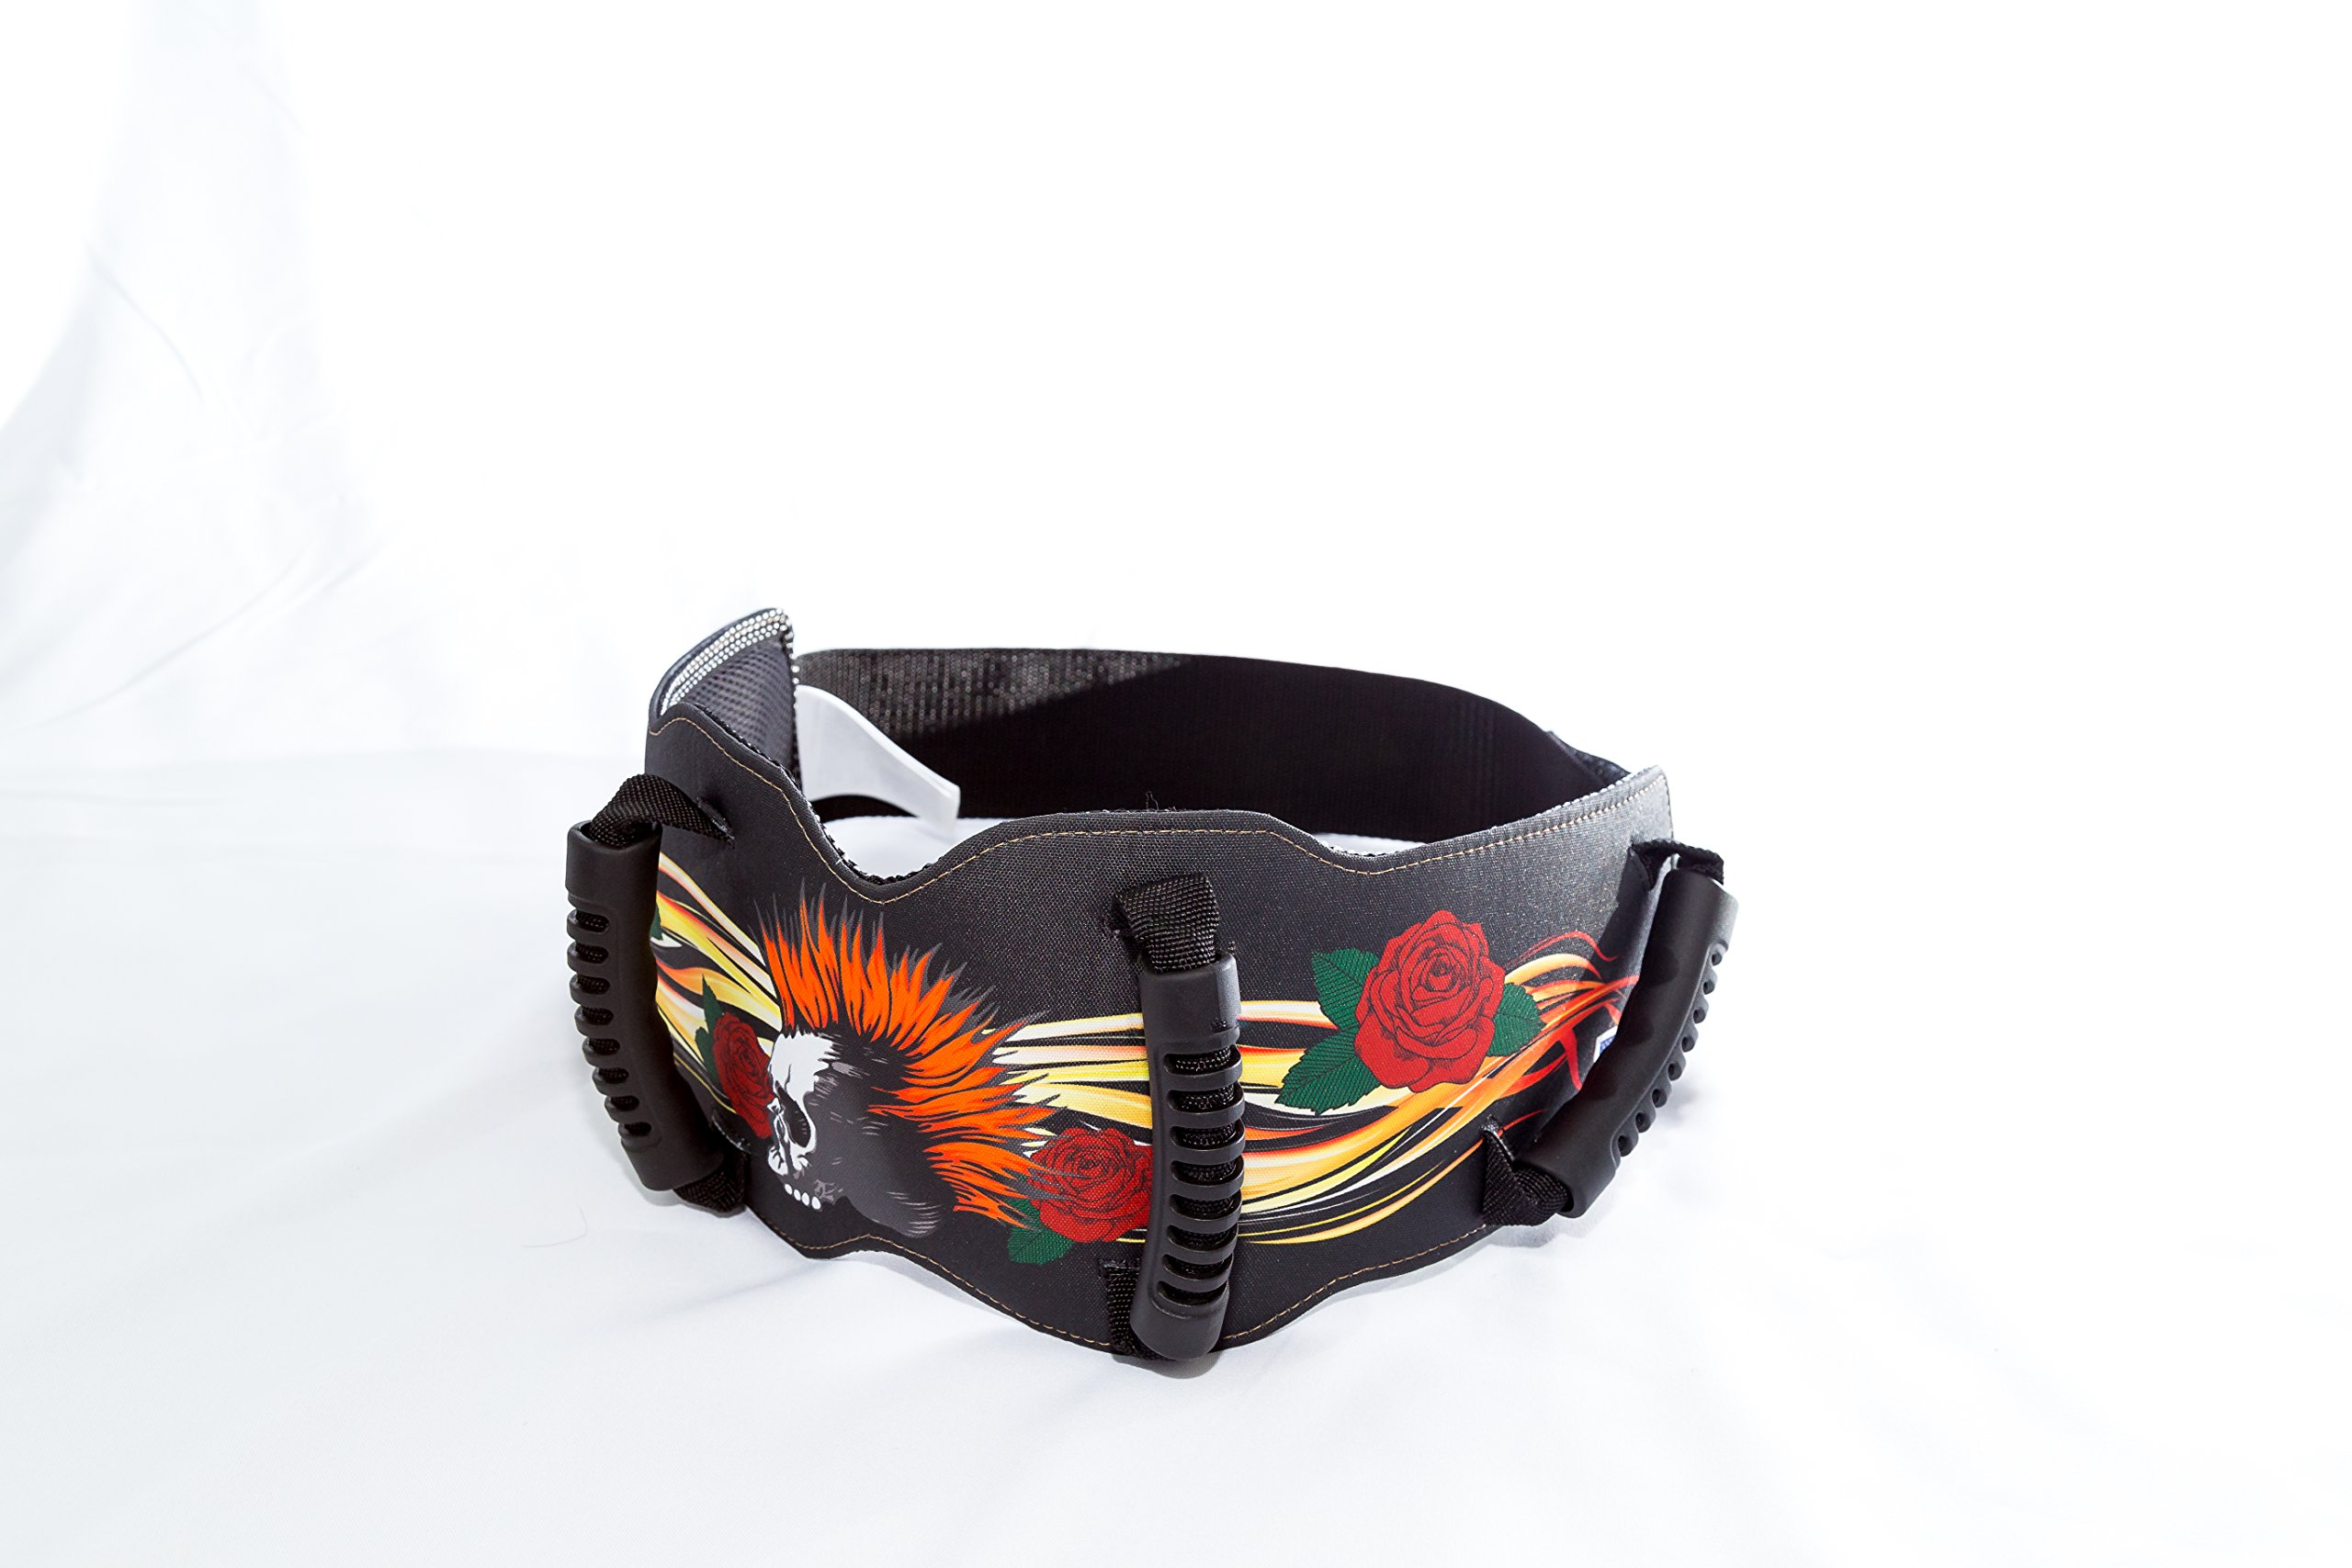 Grip-n-Ride Street Art Collection Punk Skull Belt (One Size) by Grip-n-Ride (Image #5)